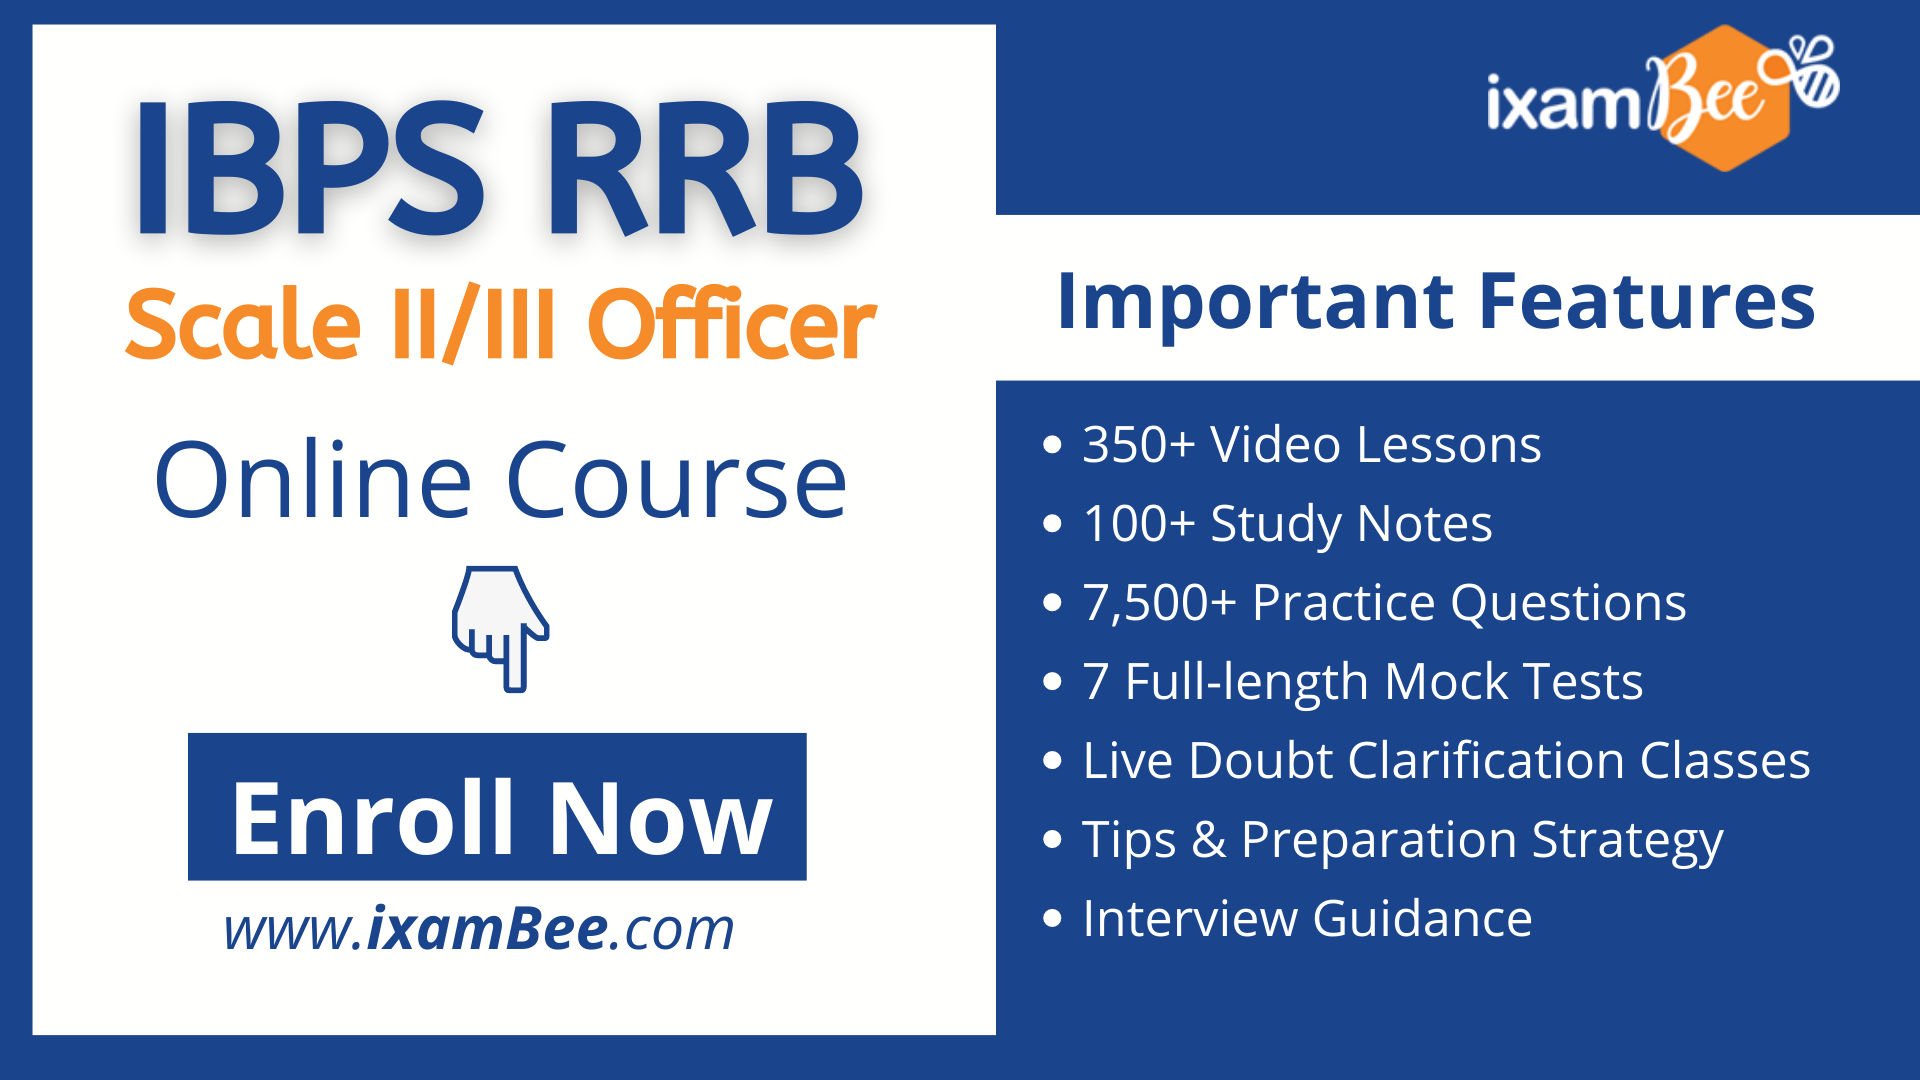 ibps rrb scale 2 and 3 online course